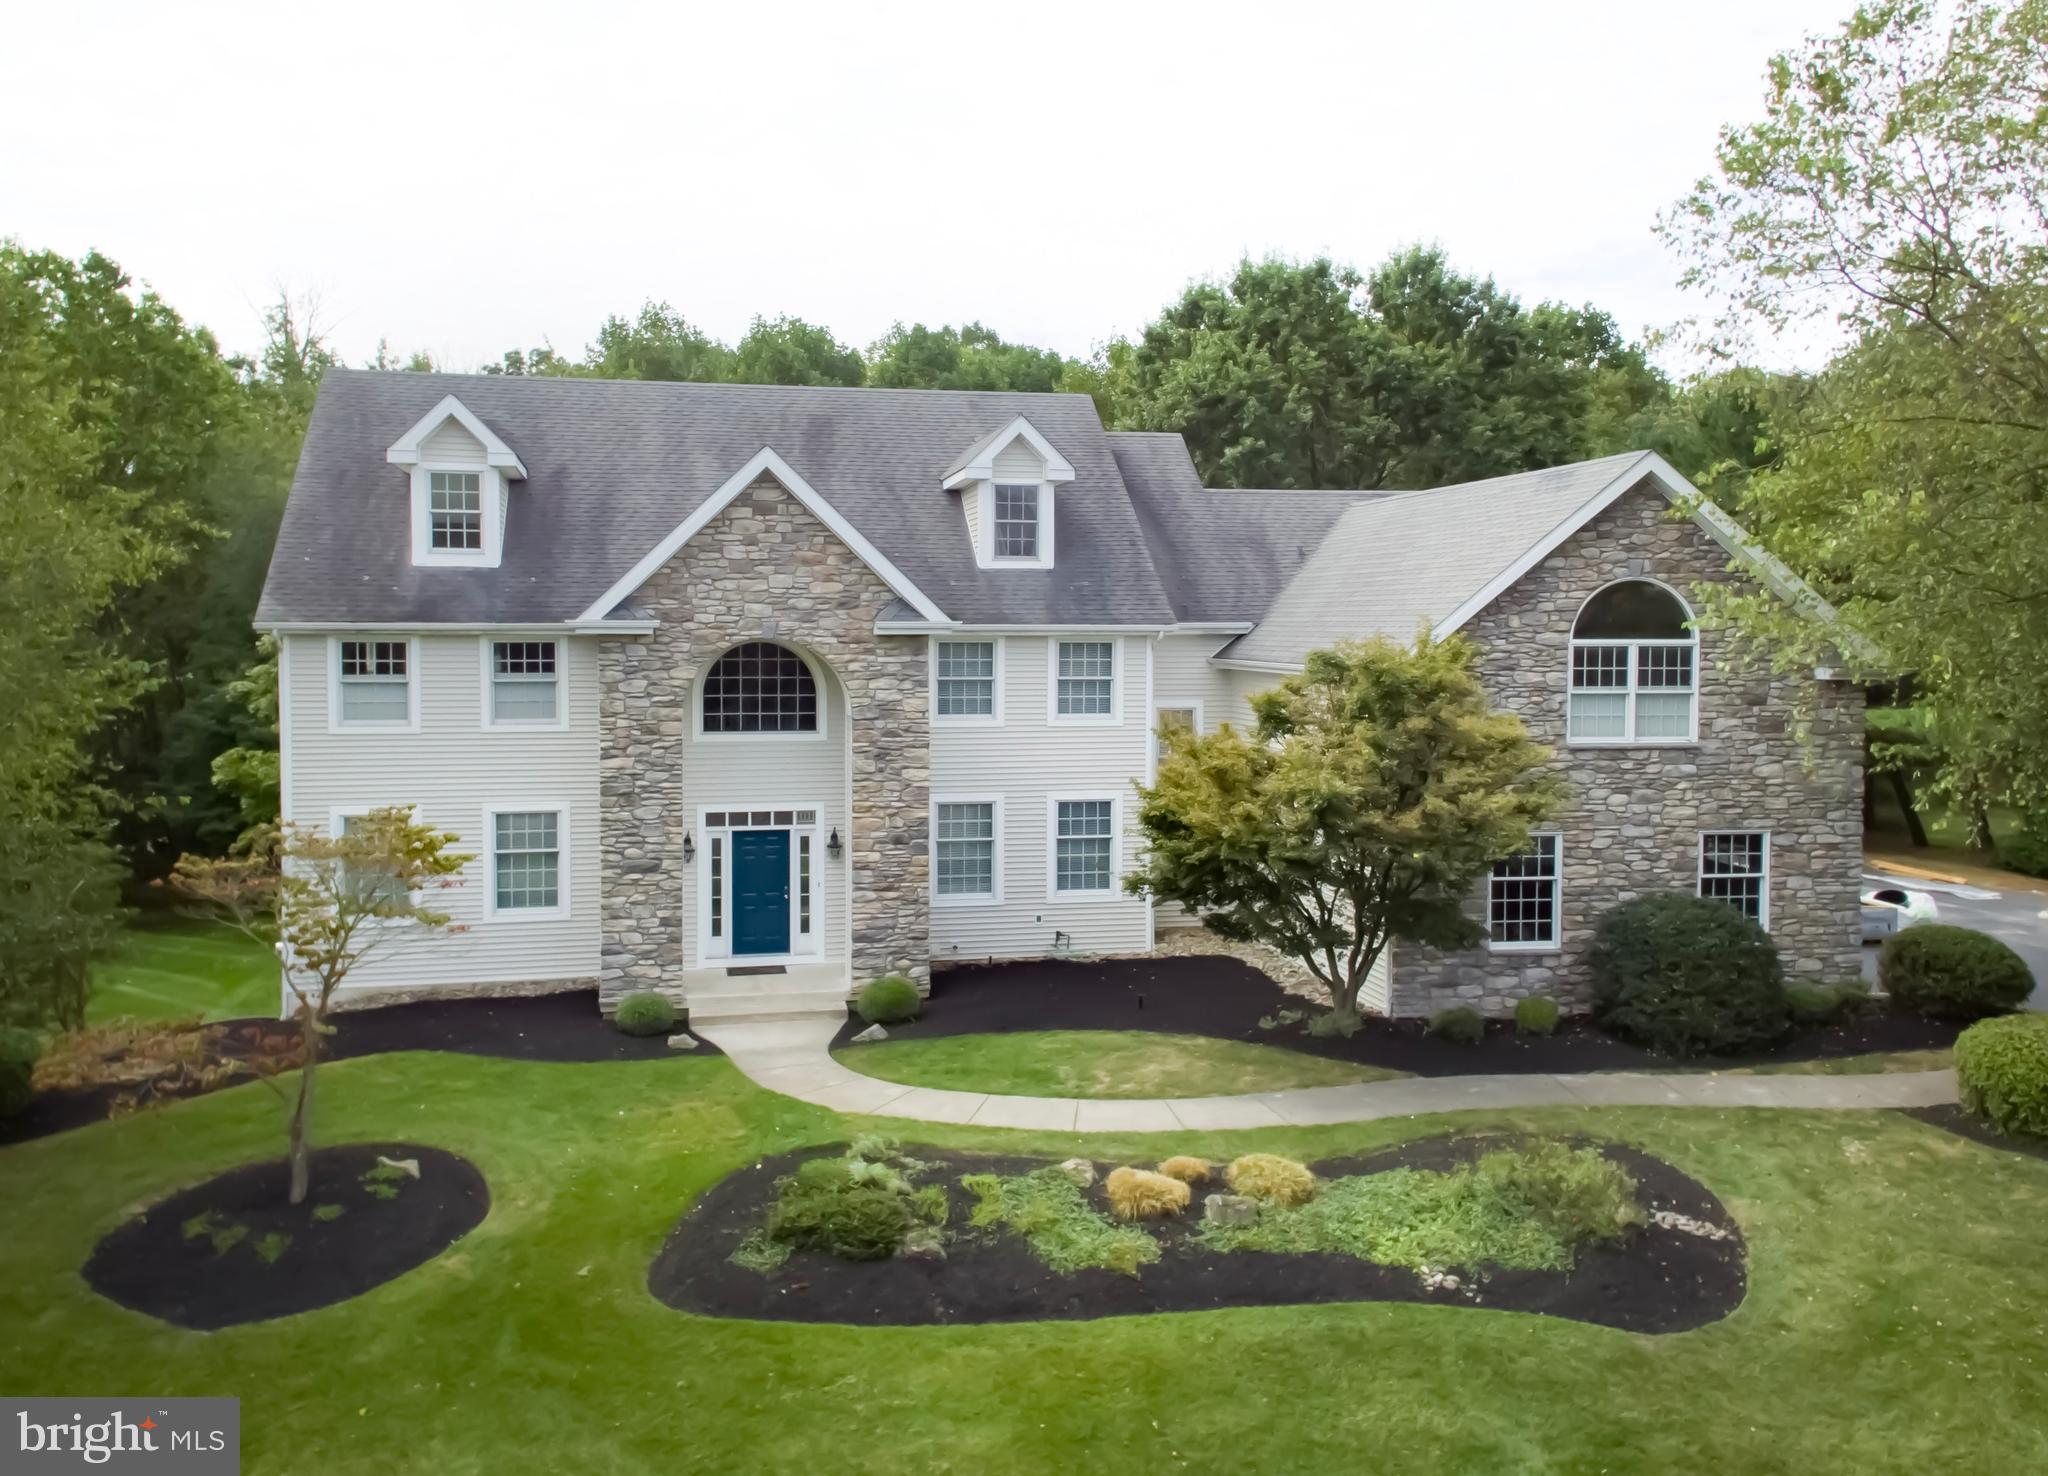 2105 COUNTRY VIEW LANE, LANSDALE, PA 19446